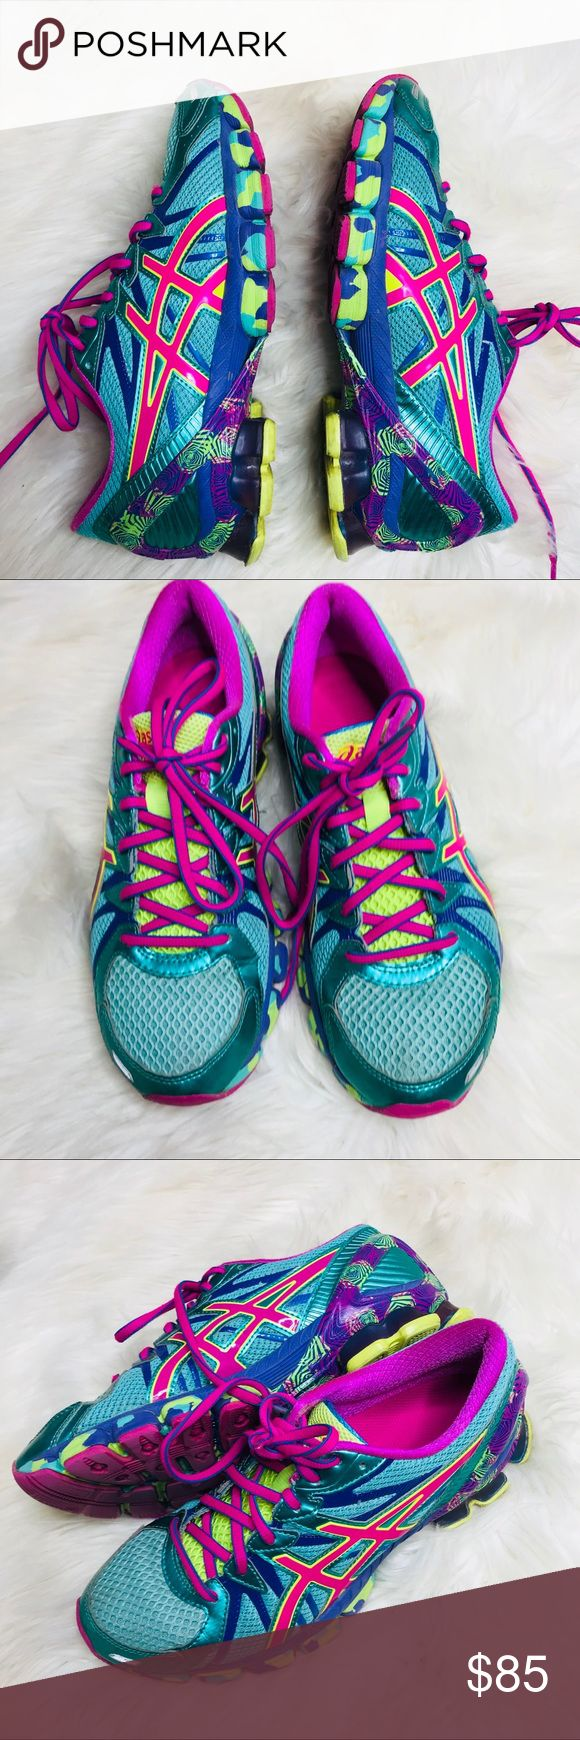 ASICS Gel Sendai 3 Neon Running Shoes Great preowned condition, no scuffs or tears. No stains. Women's Size 9 Asics Shoes Athletic Shoes